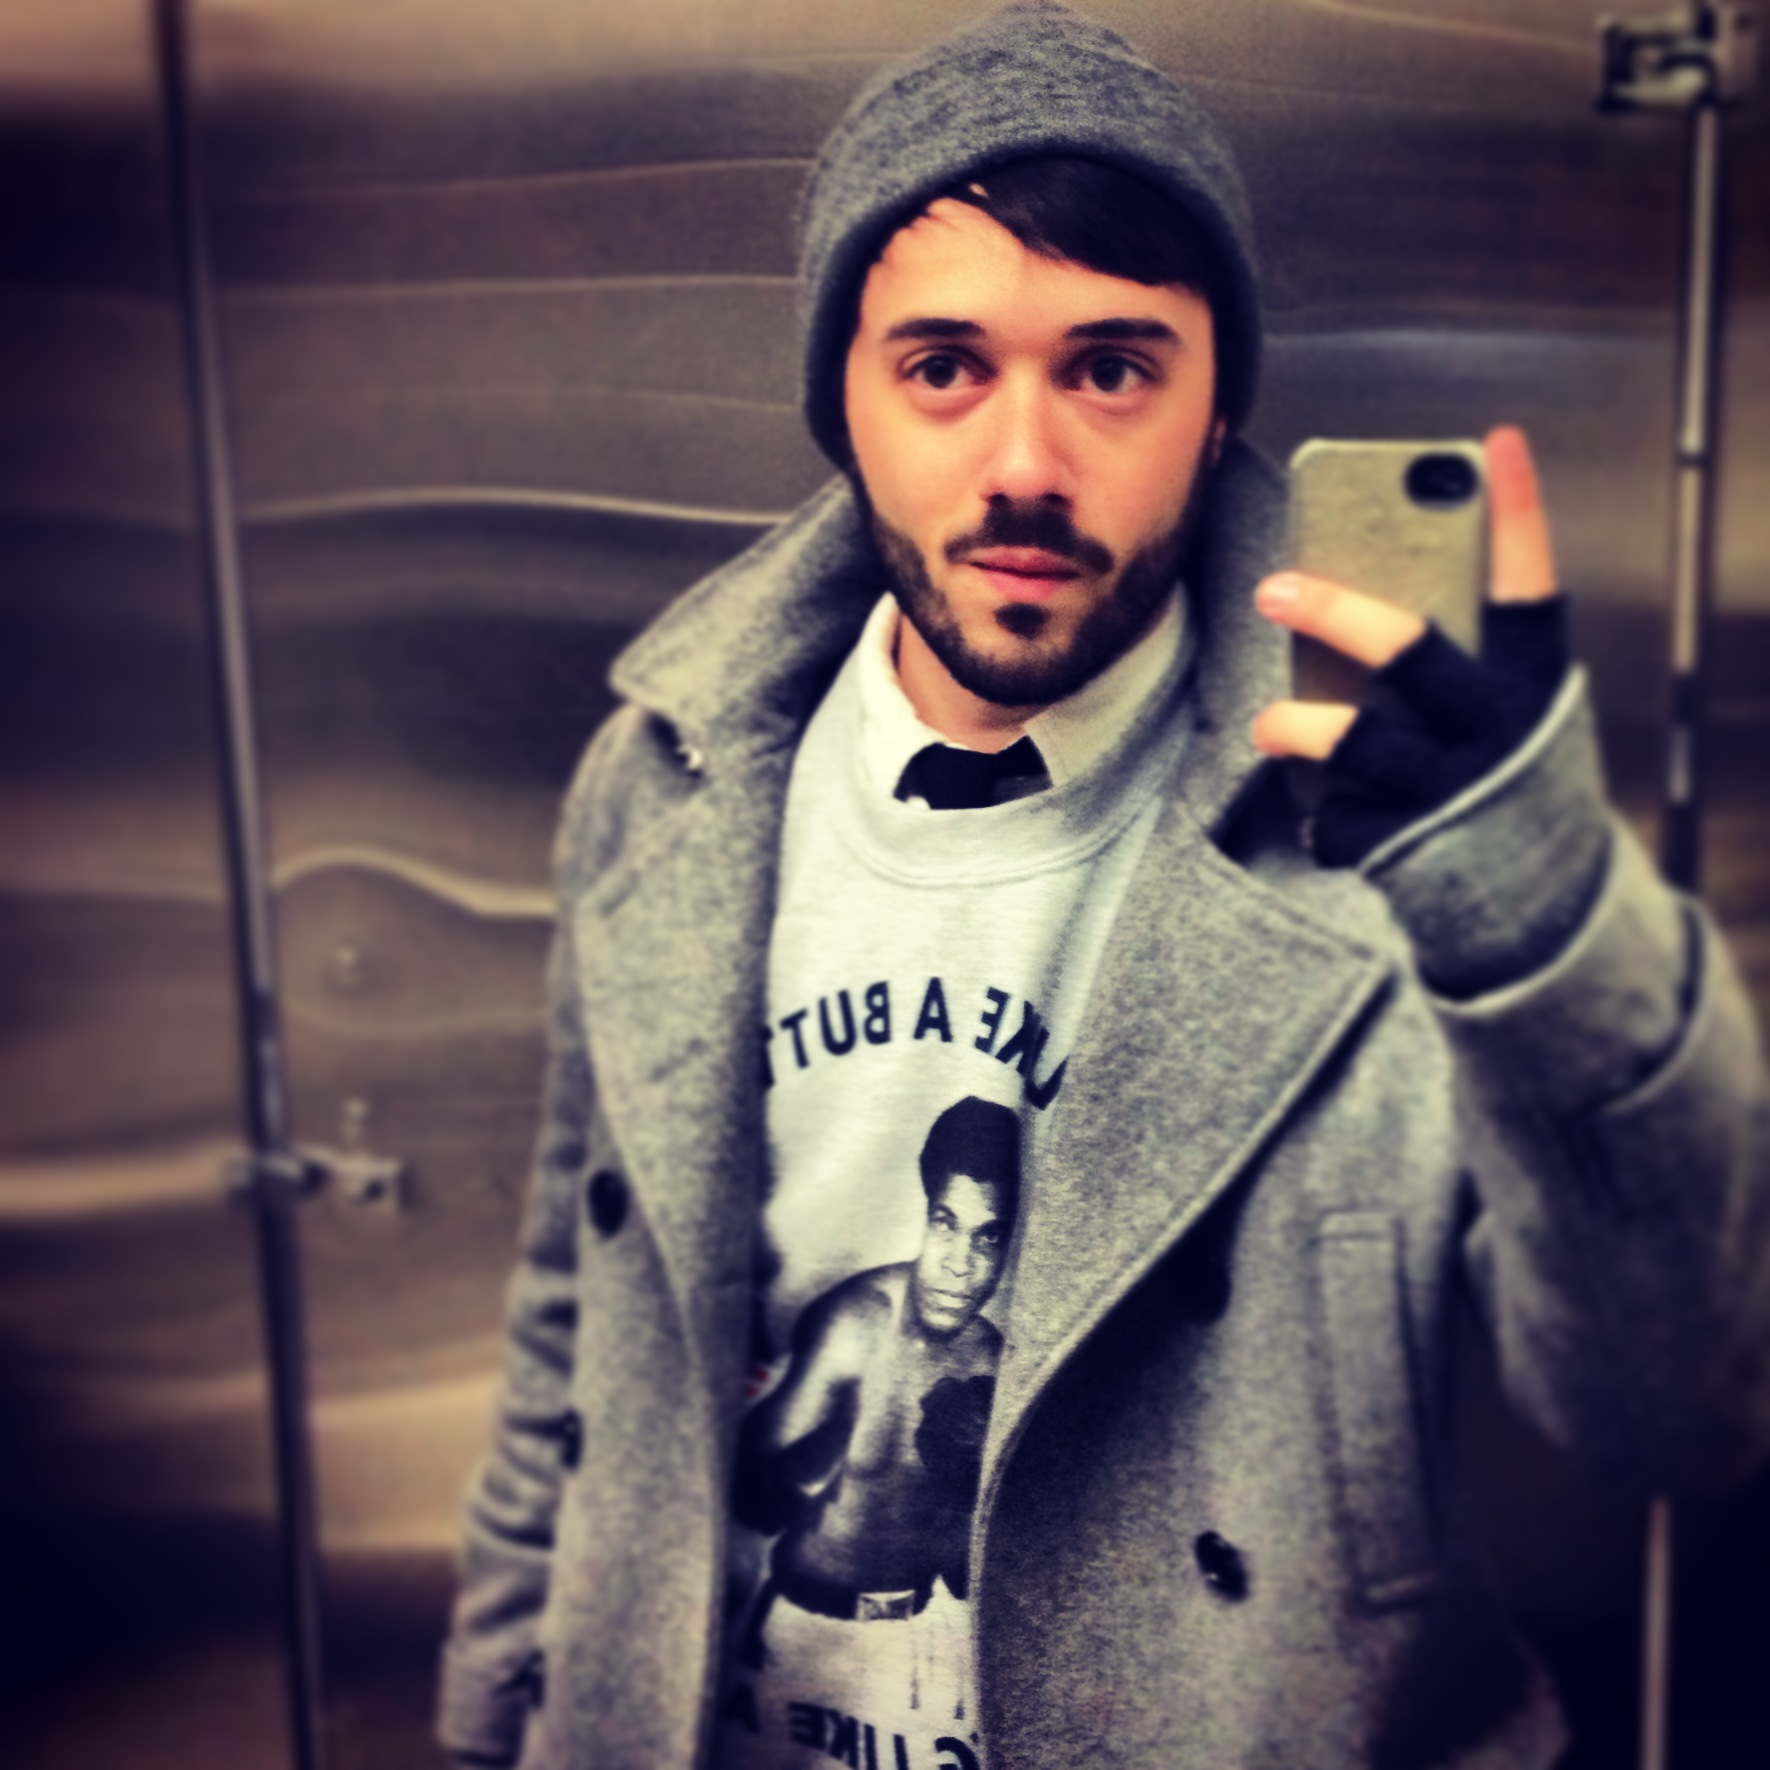 """House of Nod Creative Director taking a colloquial""""selfie"""" in a public men's room after wrapping a long production."""